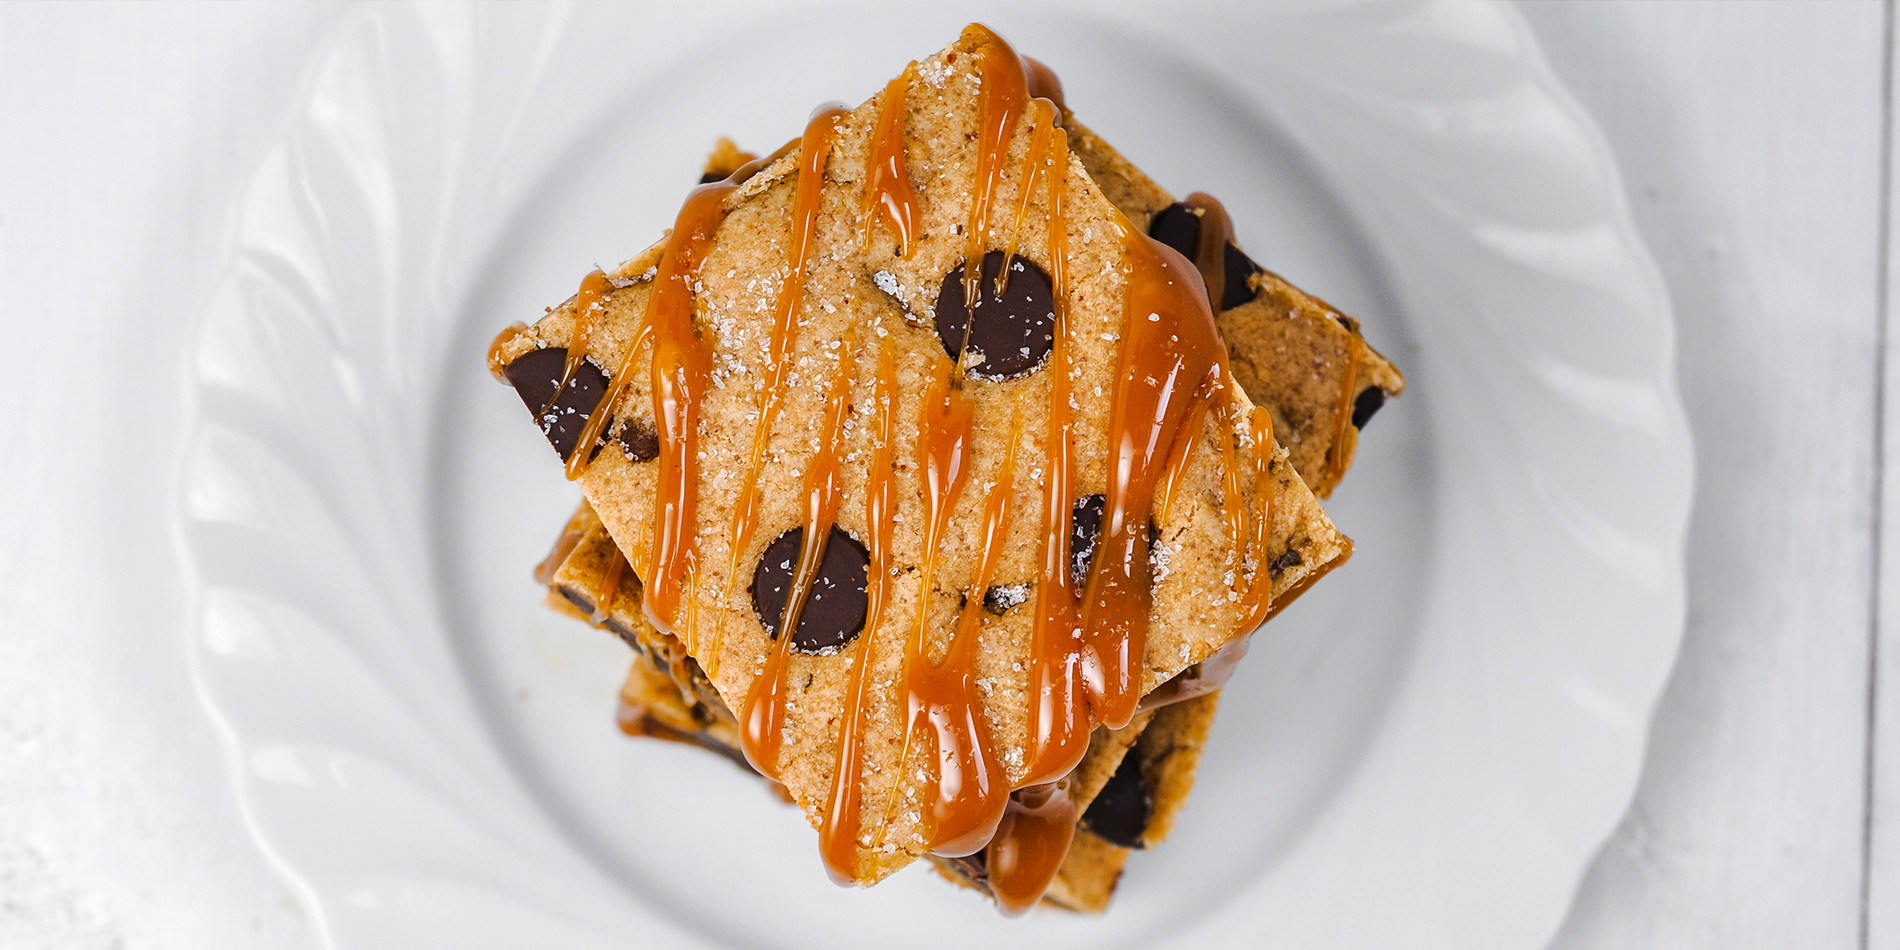 Salted Caramel Chocolate Chip Maple Almond Bars with caramel drizzle on a white plate (bird's eye view) in white background